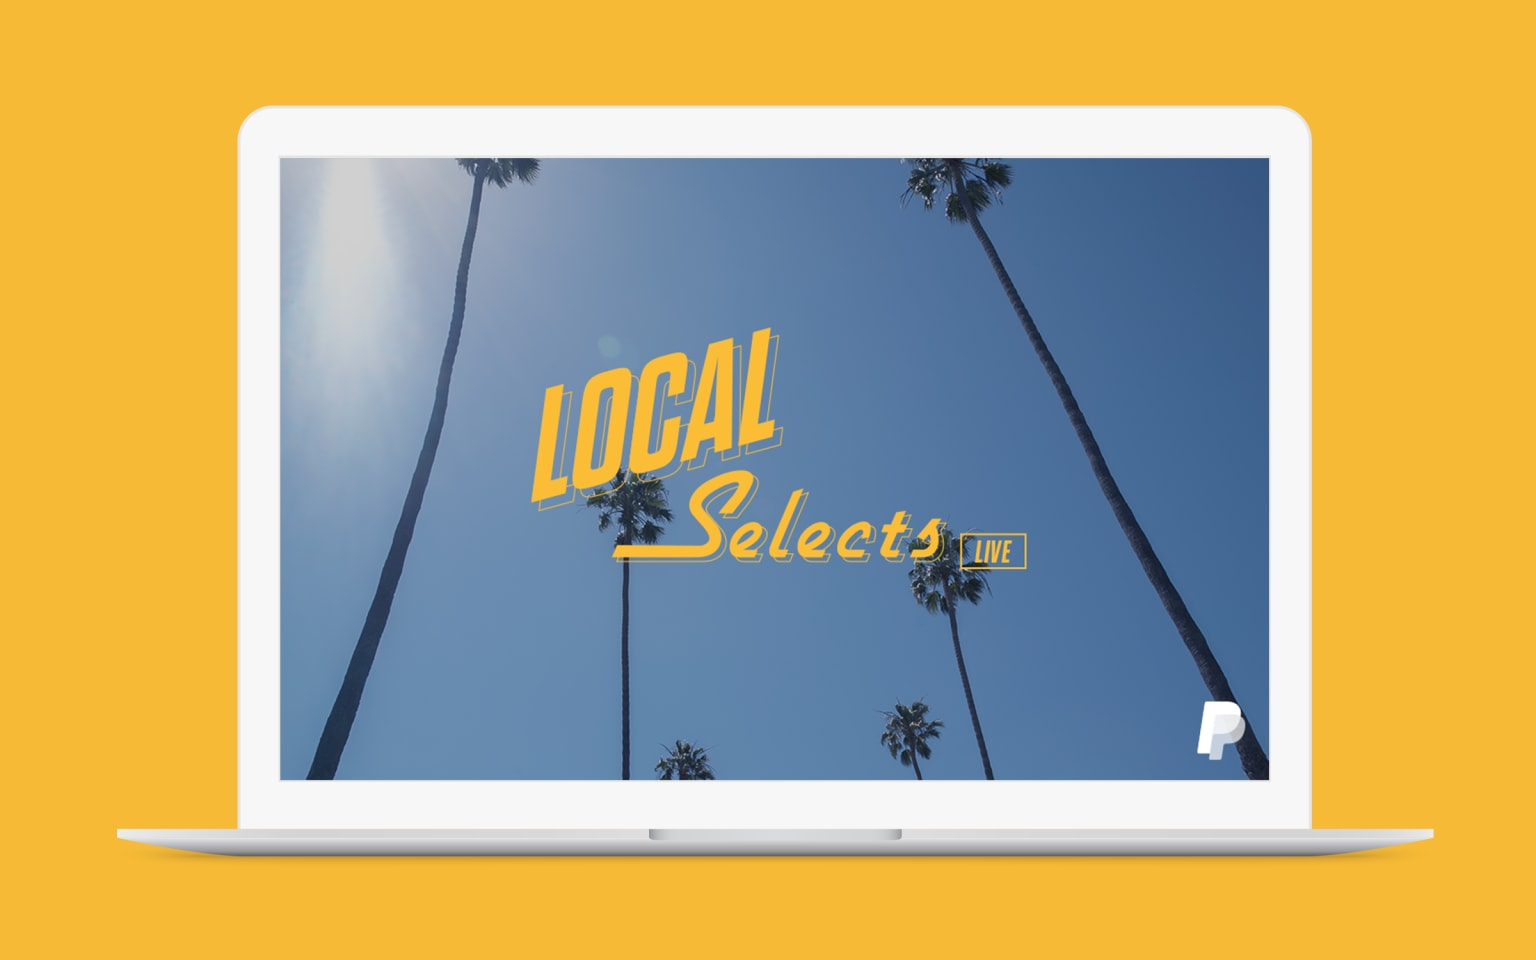 PayPal - Local Selects